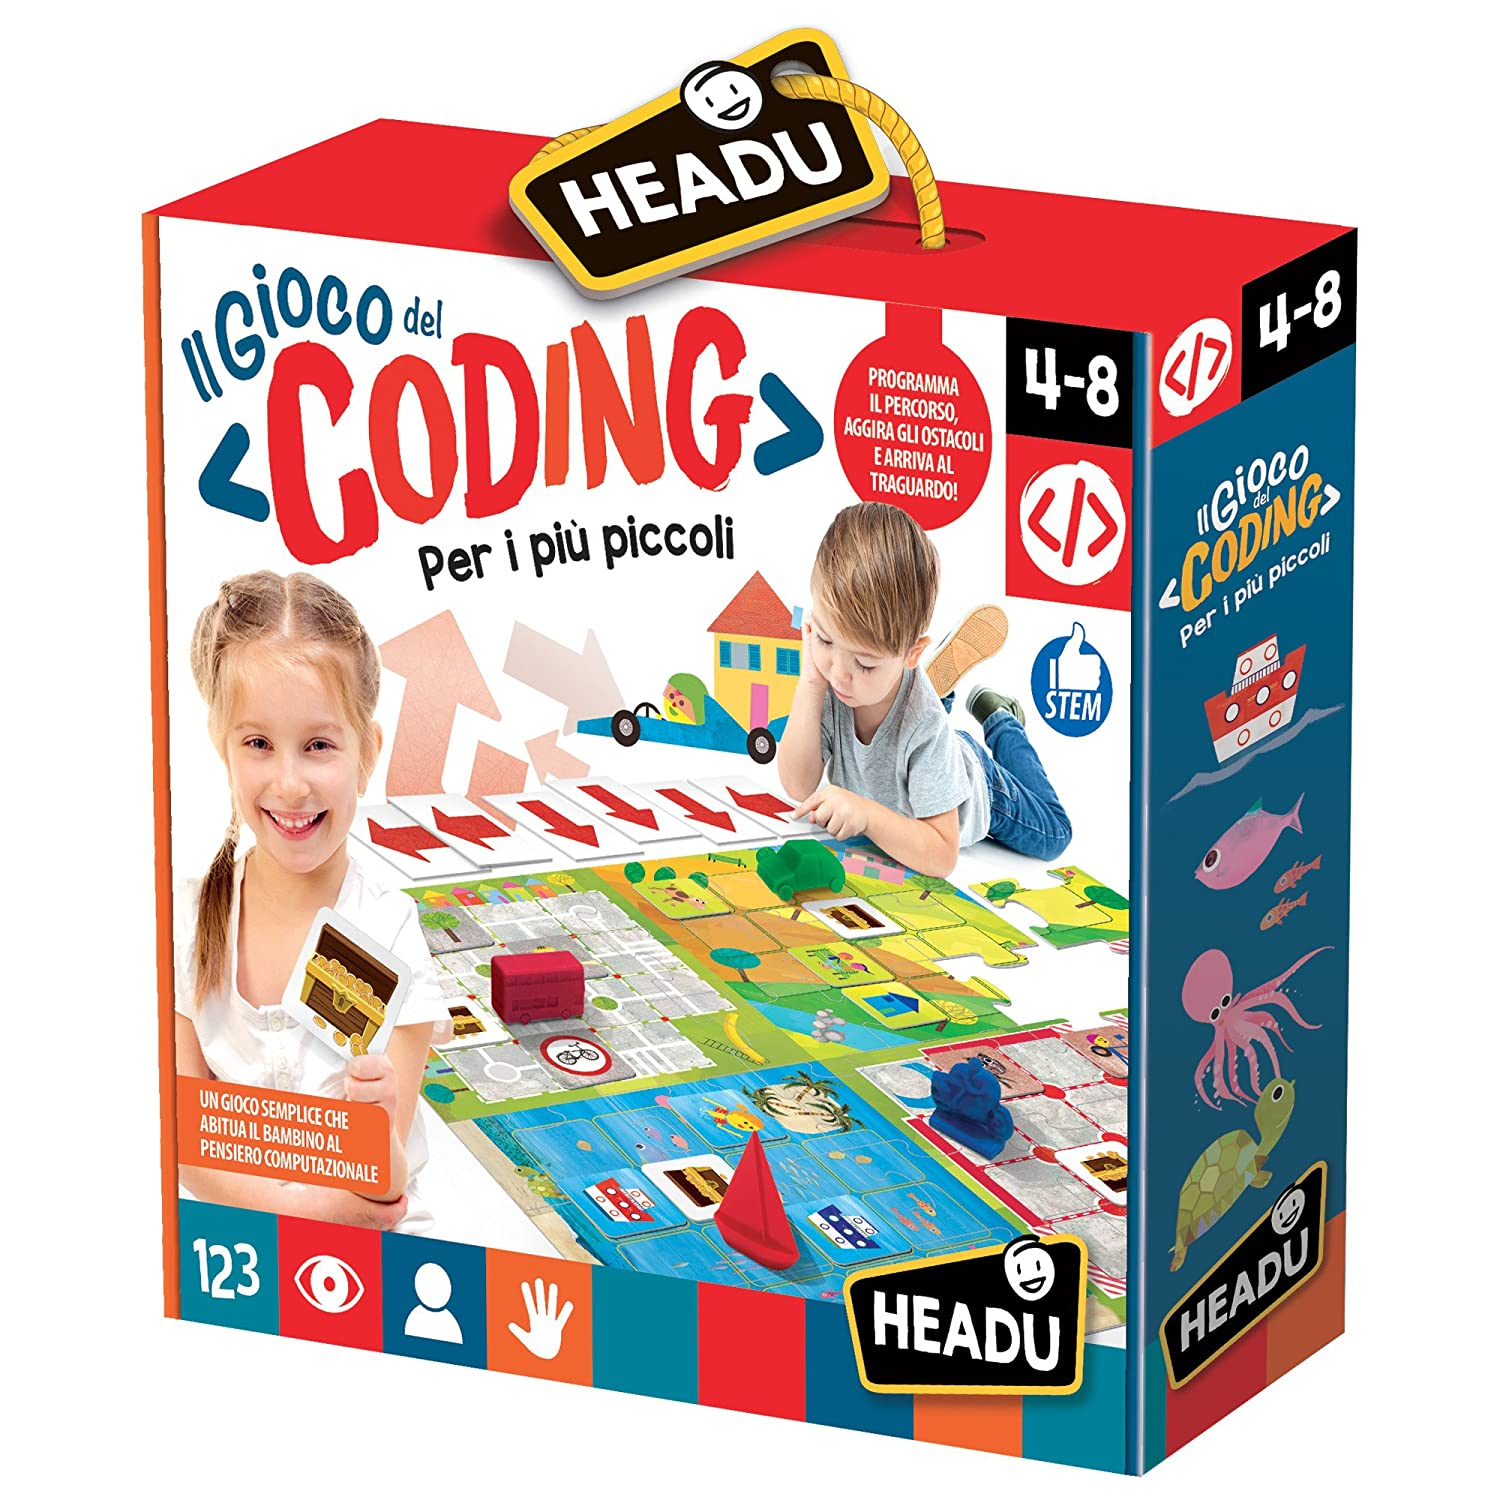 Headu it20621 – The Game of the Coding